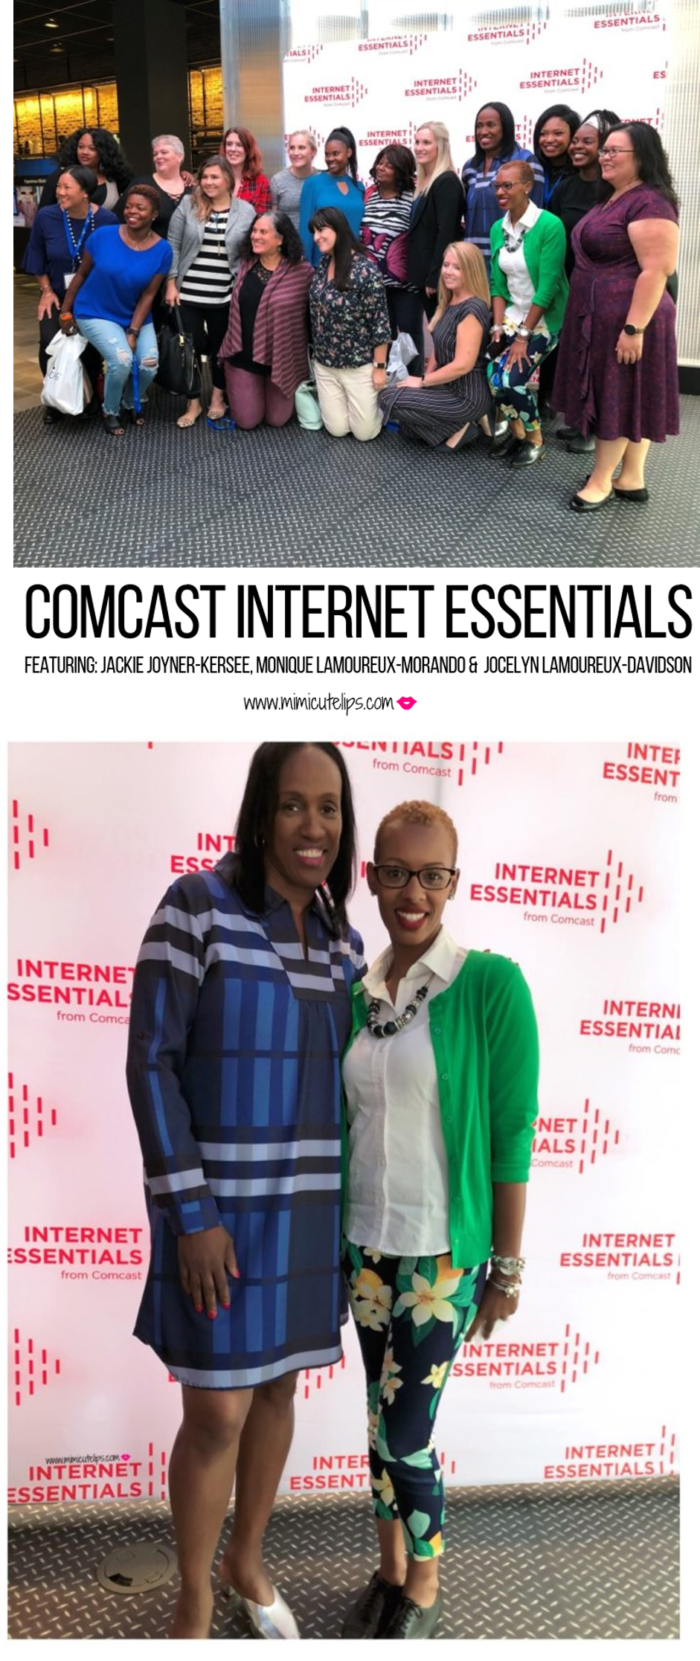 Comcast hosted a lunch with U.S. Olympian Jocelyn Lamoureux-Davidson, Monique Lamoureux-Morando, and Jackie Joyner-Kersee to talk Internet Essentials.